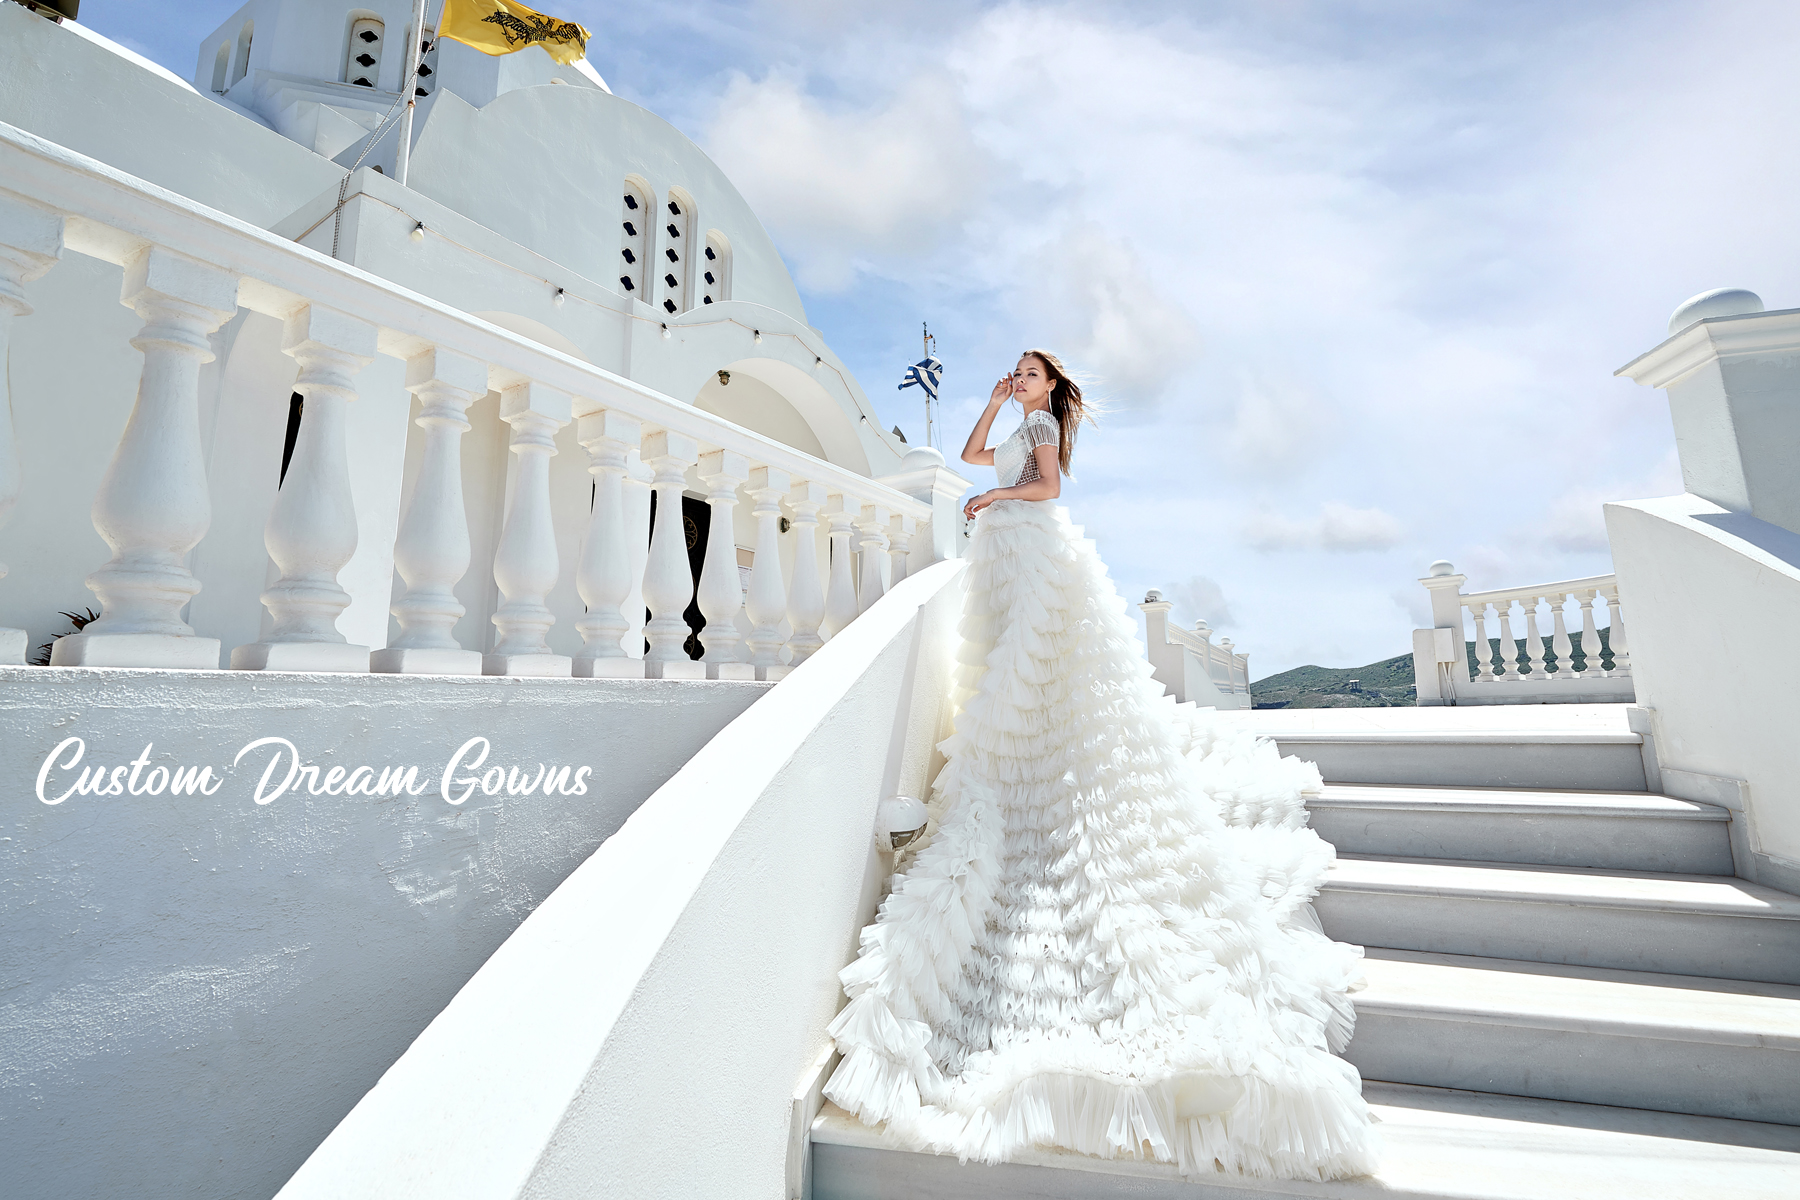 Custom Wedding Dresses And Bridal Gowns Custom Dream Gowns The Best Fitting Dresses On Earth Designer Wedding Dresses Bridesmaid Mother Of The Bride Custom Made Affordable